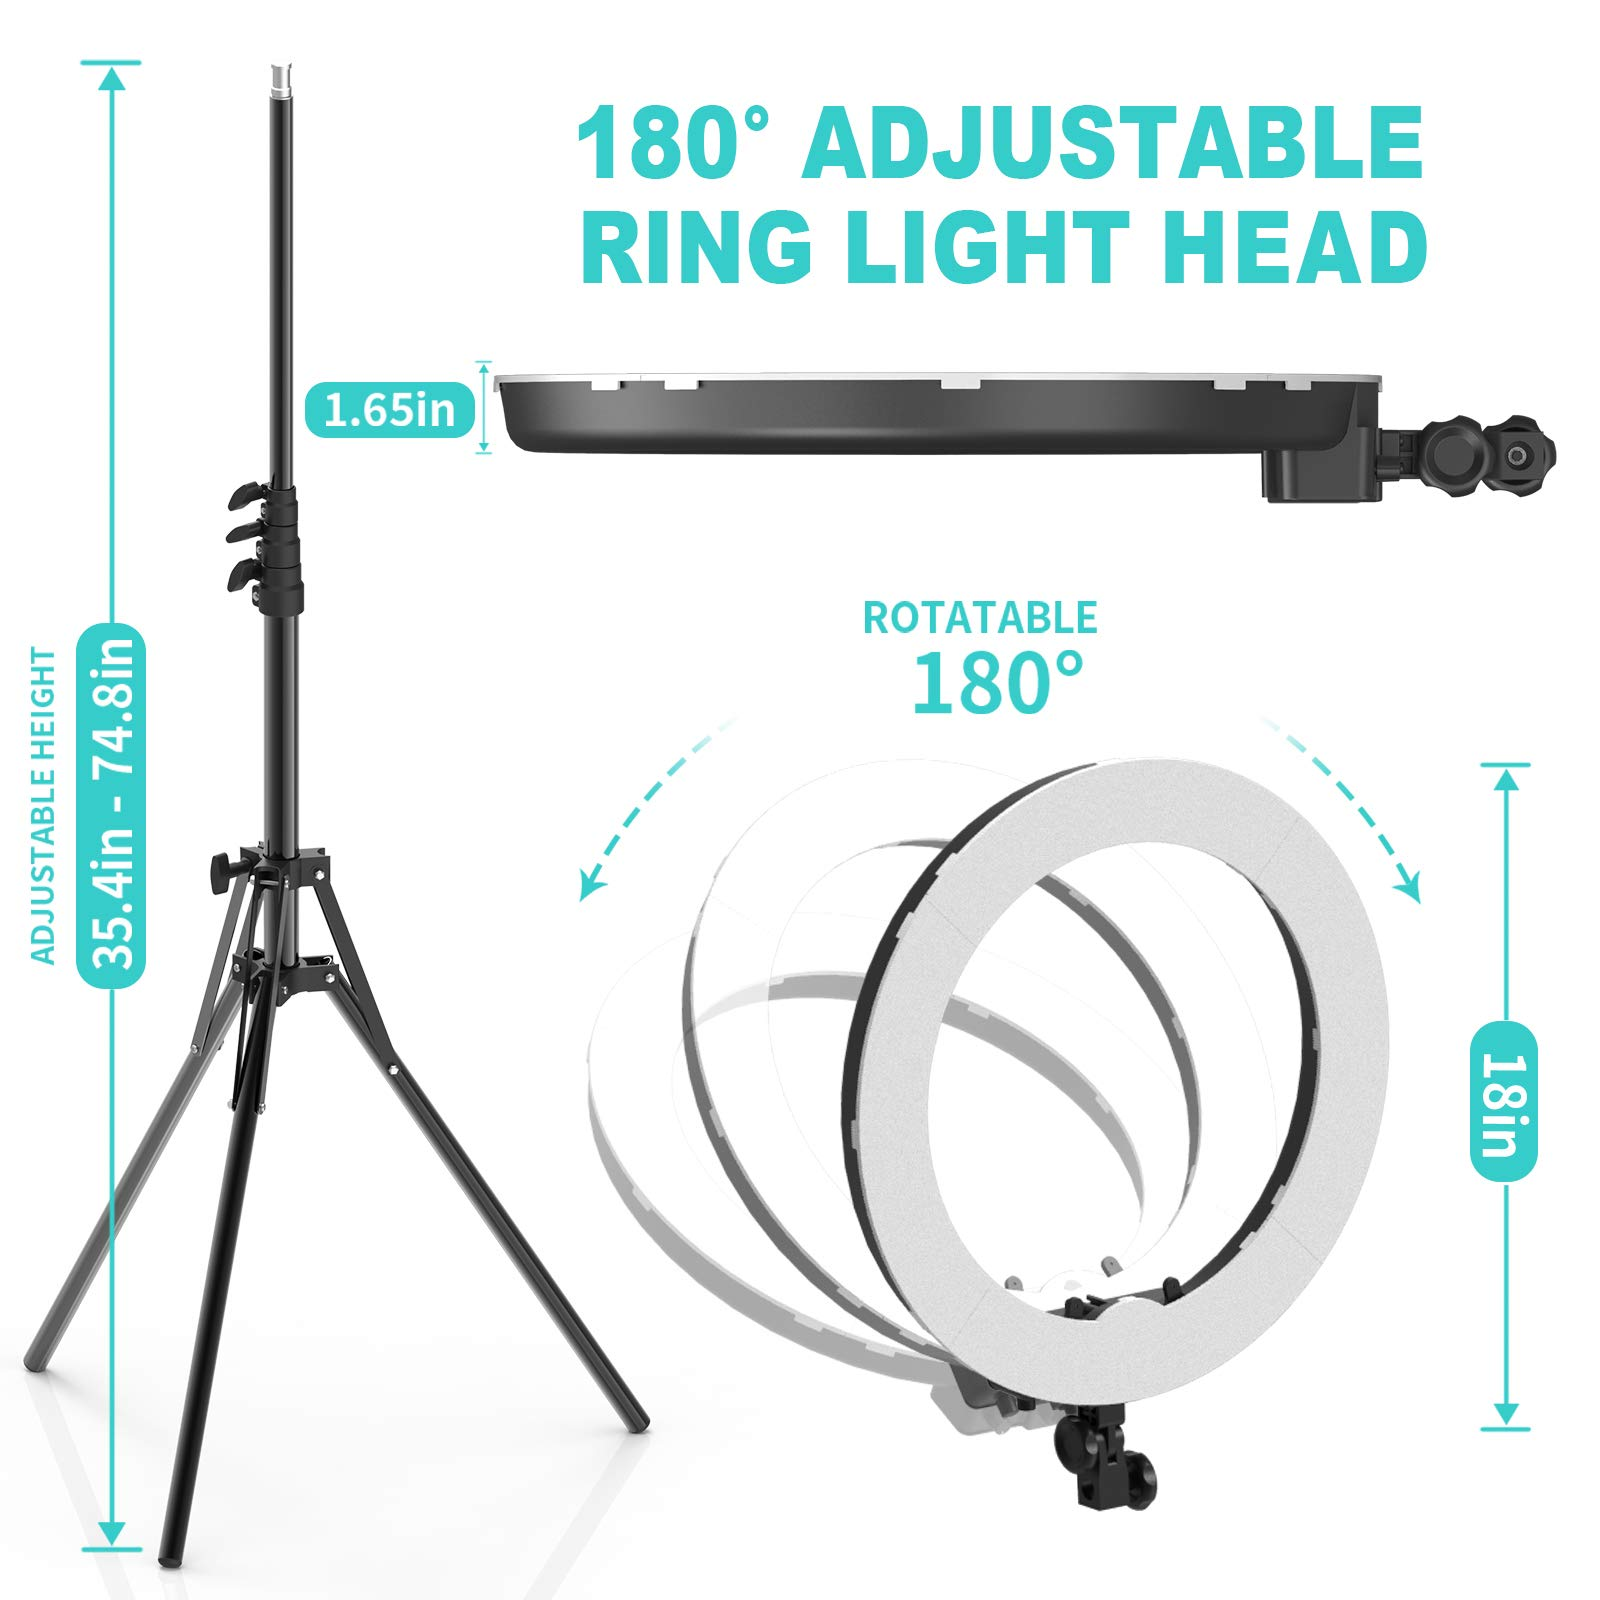 Ring Light Kit 18'' 48cm Outer 55W 5500K Dimmable Led Light Ring with Tripod Stand & Carrying Bag for Camera, Smartphone,Make-Up,YouTube,Portrait Shooting,Live Stream etc by PIXEL (Image #2)